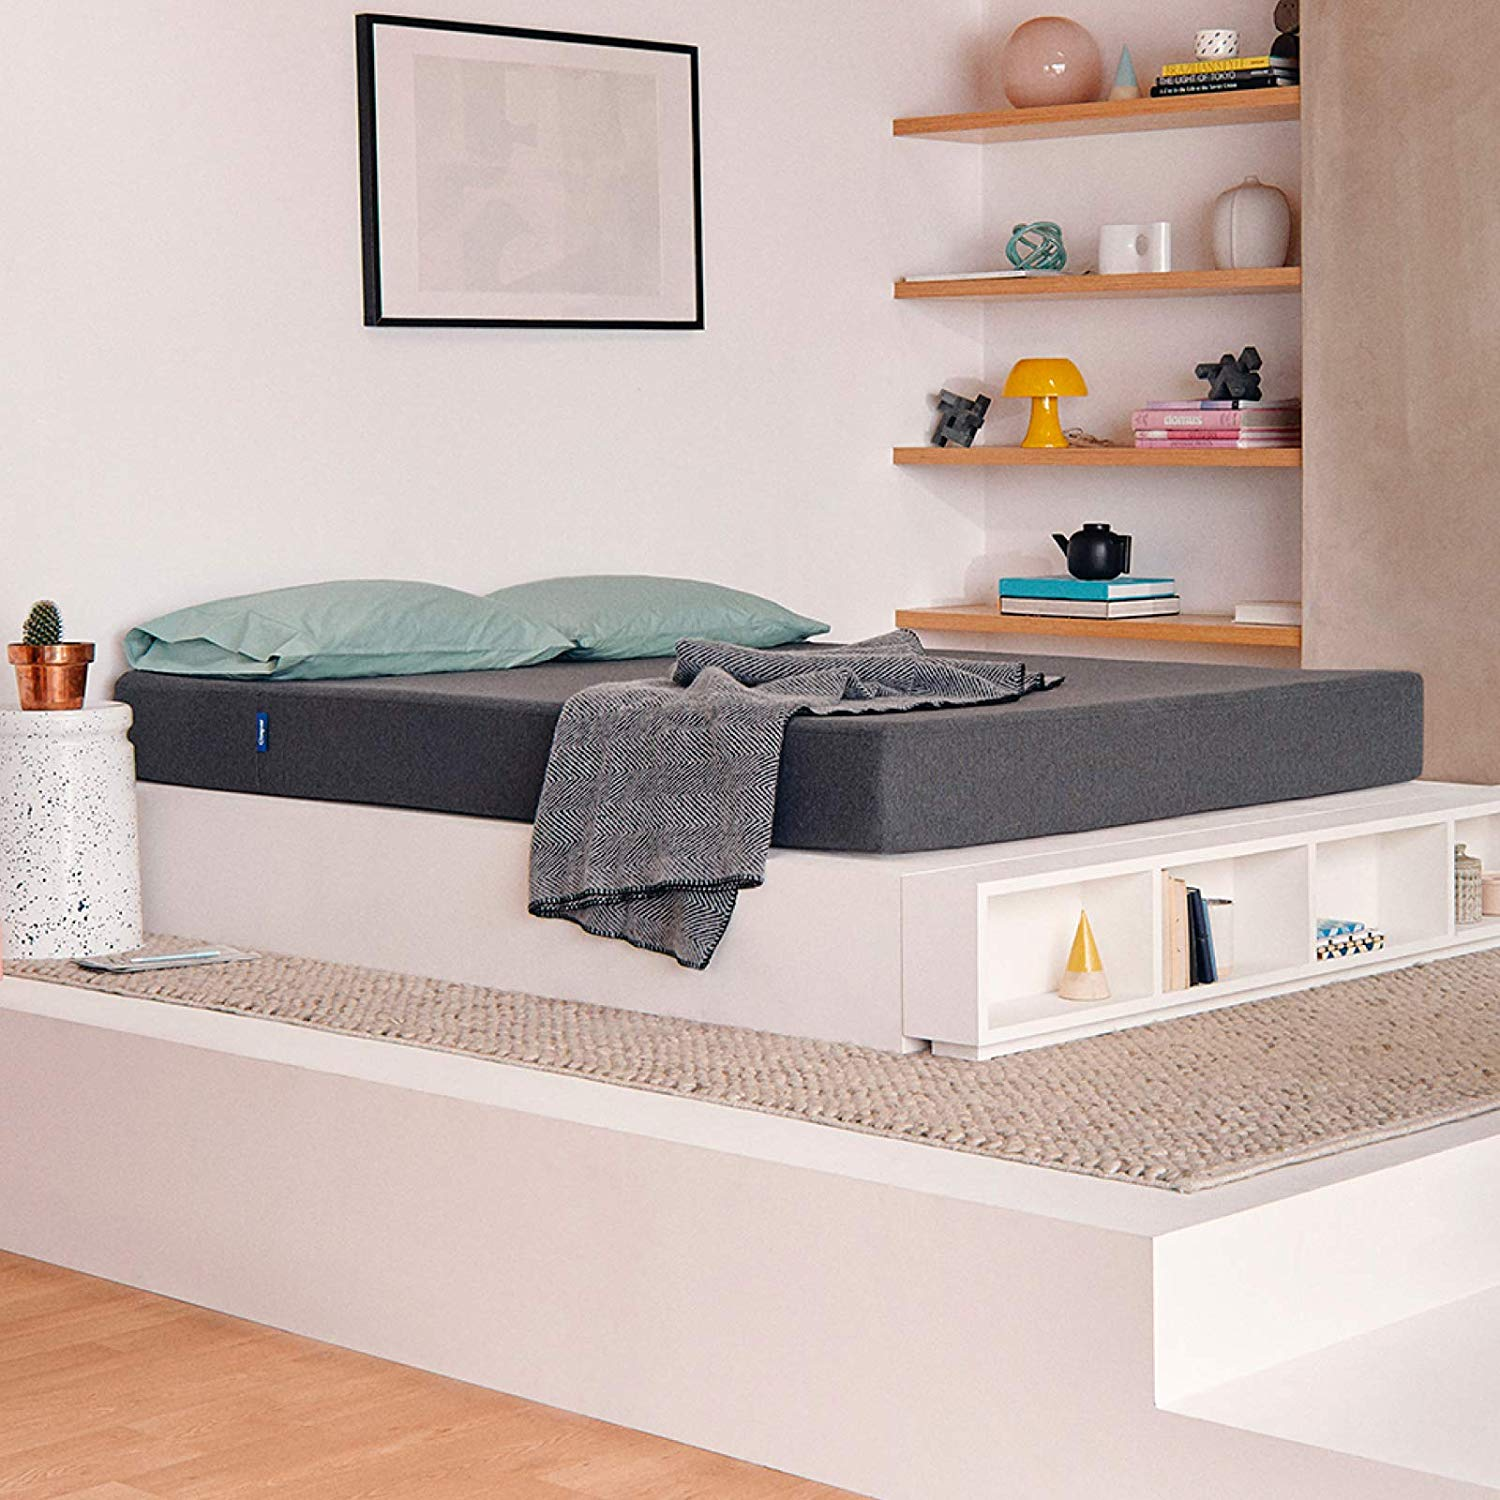 Casper Sleep Best Mattress For Hip  Pain Review by www.snoremagazine.com